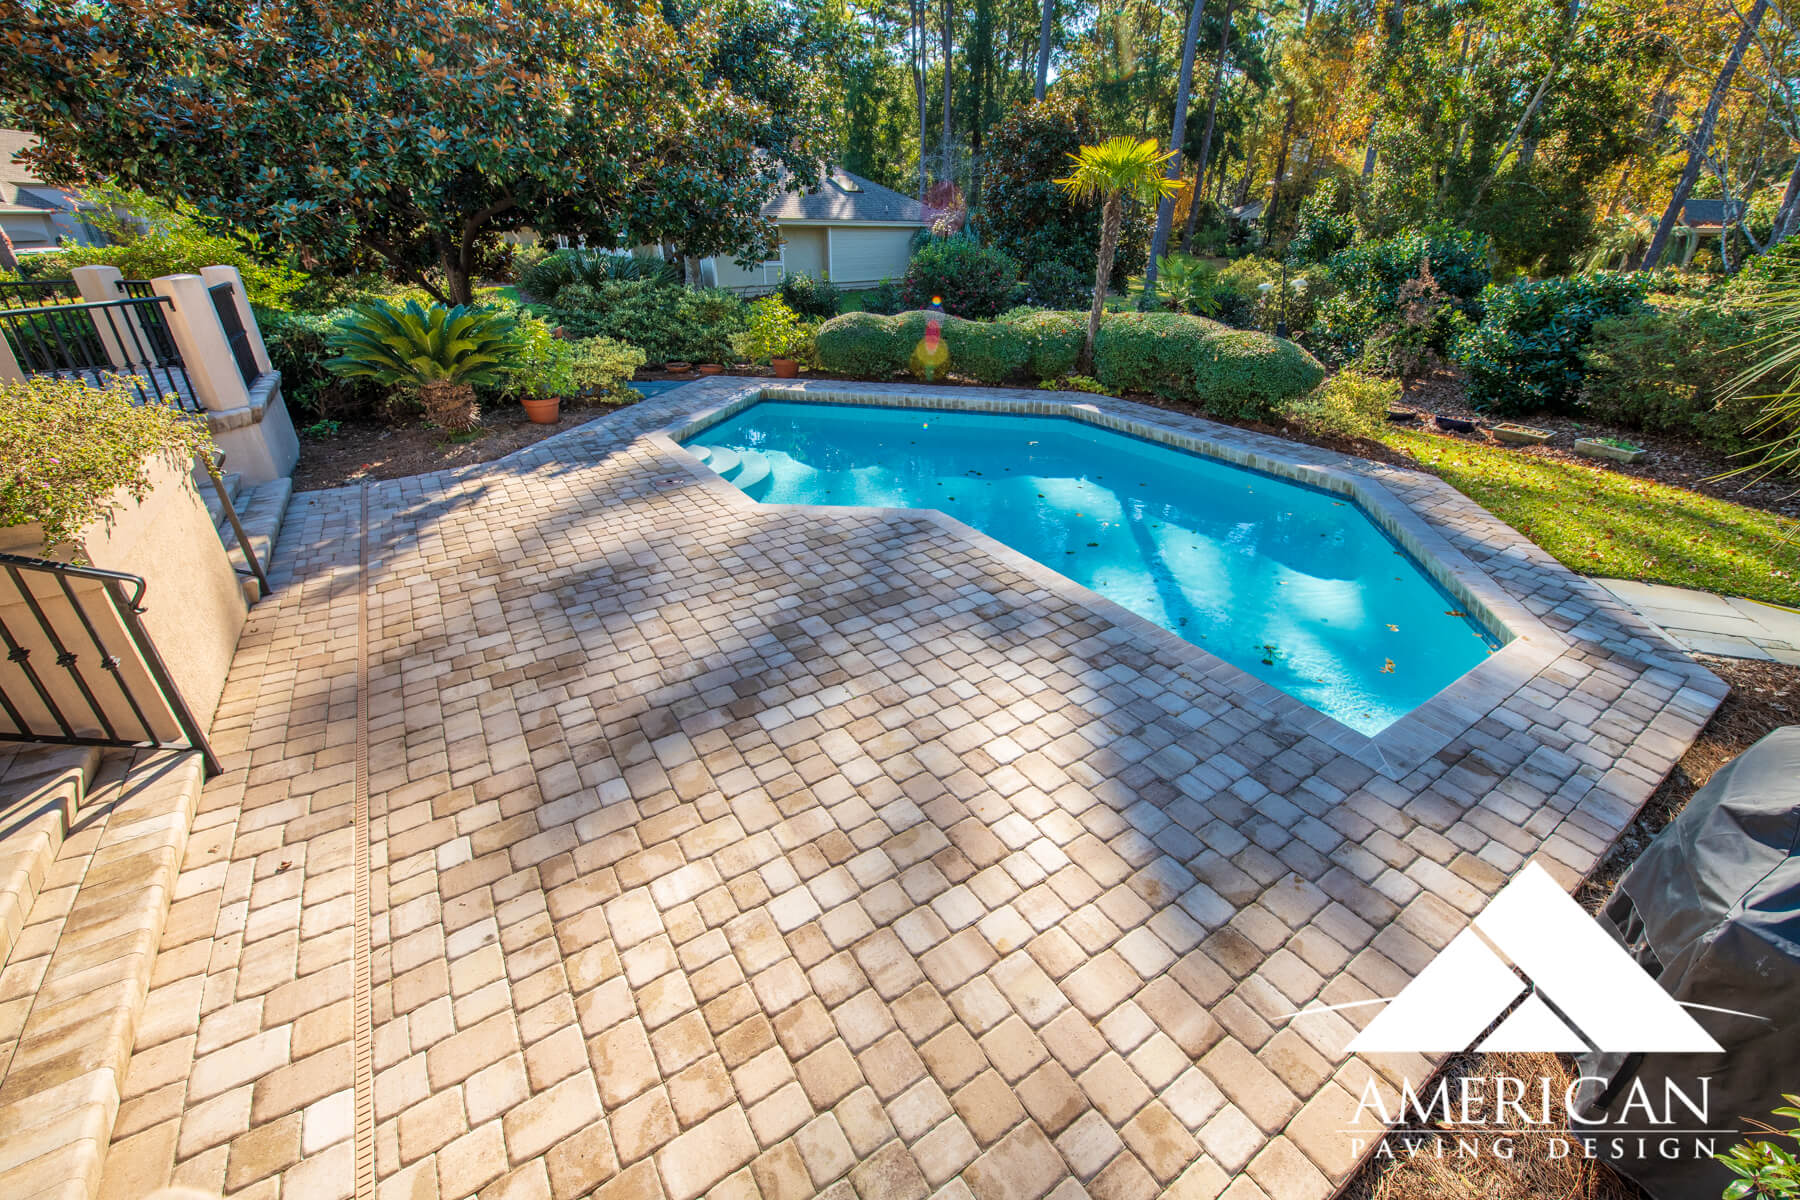 Remodel Pool Deck - Hilton Head Island, SC